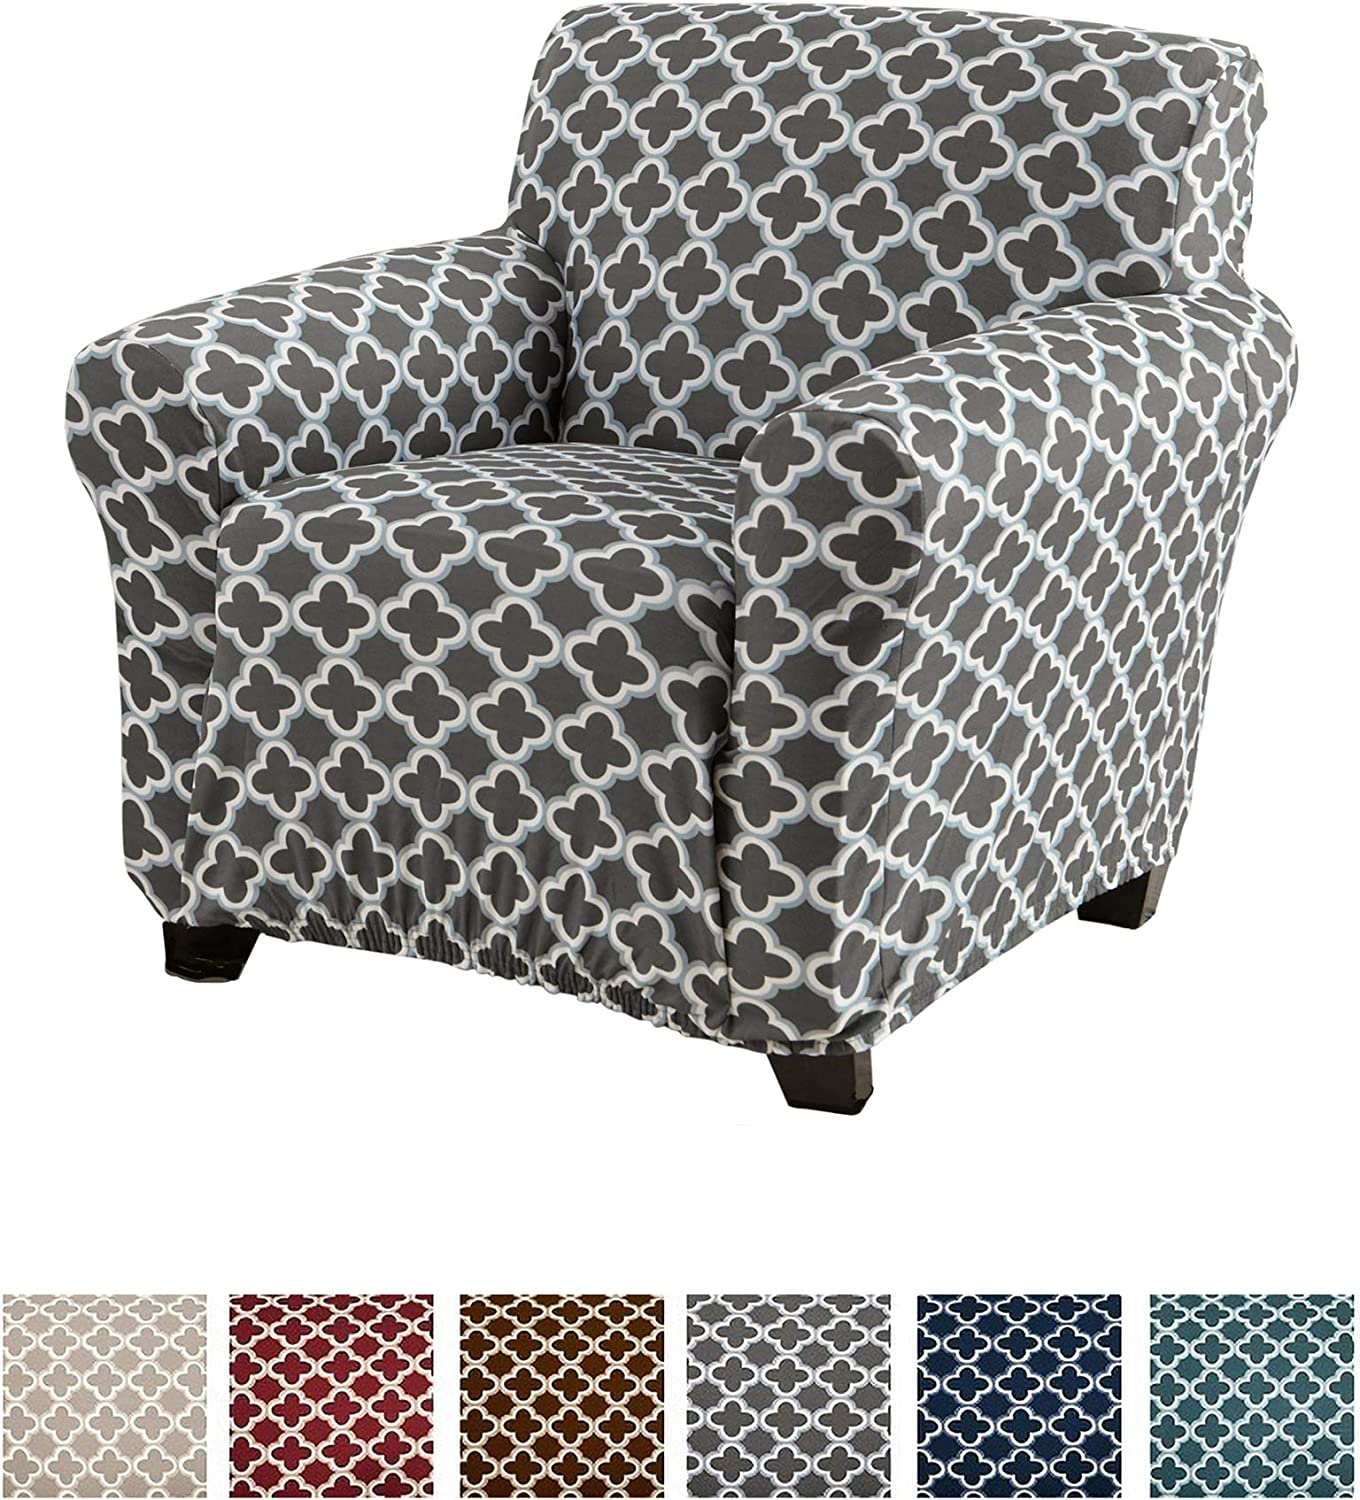 Amazon Com Home Fashion Designs Printed Twill Arm Chair Slipcover One Piece Stretch Chair Cover Strapless Arm Chair Cover For Living Room Brenna Collection Slipcover Chair Charcoal Home Kitchen